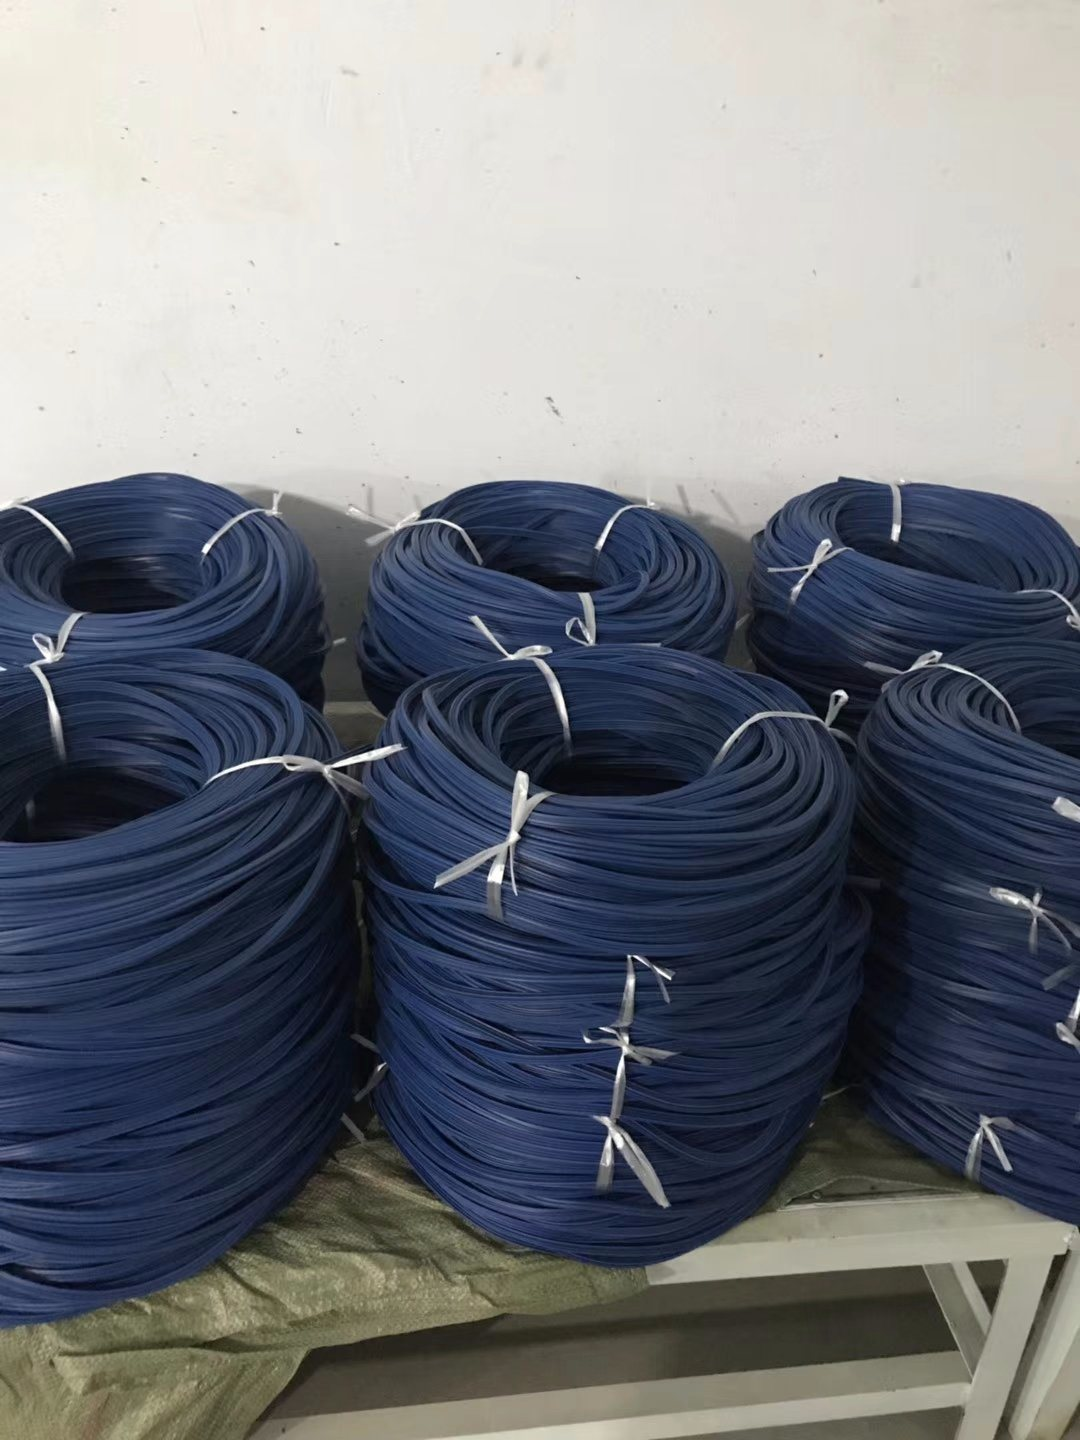 High Quality Silicone Tube, Silicone Hose, Silicone Sleeve, Silicone Pipe as Buyer′s Requirement